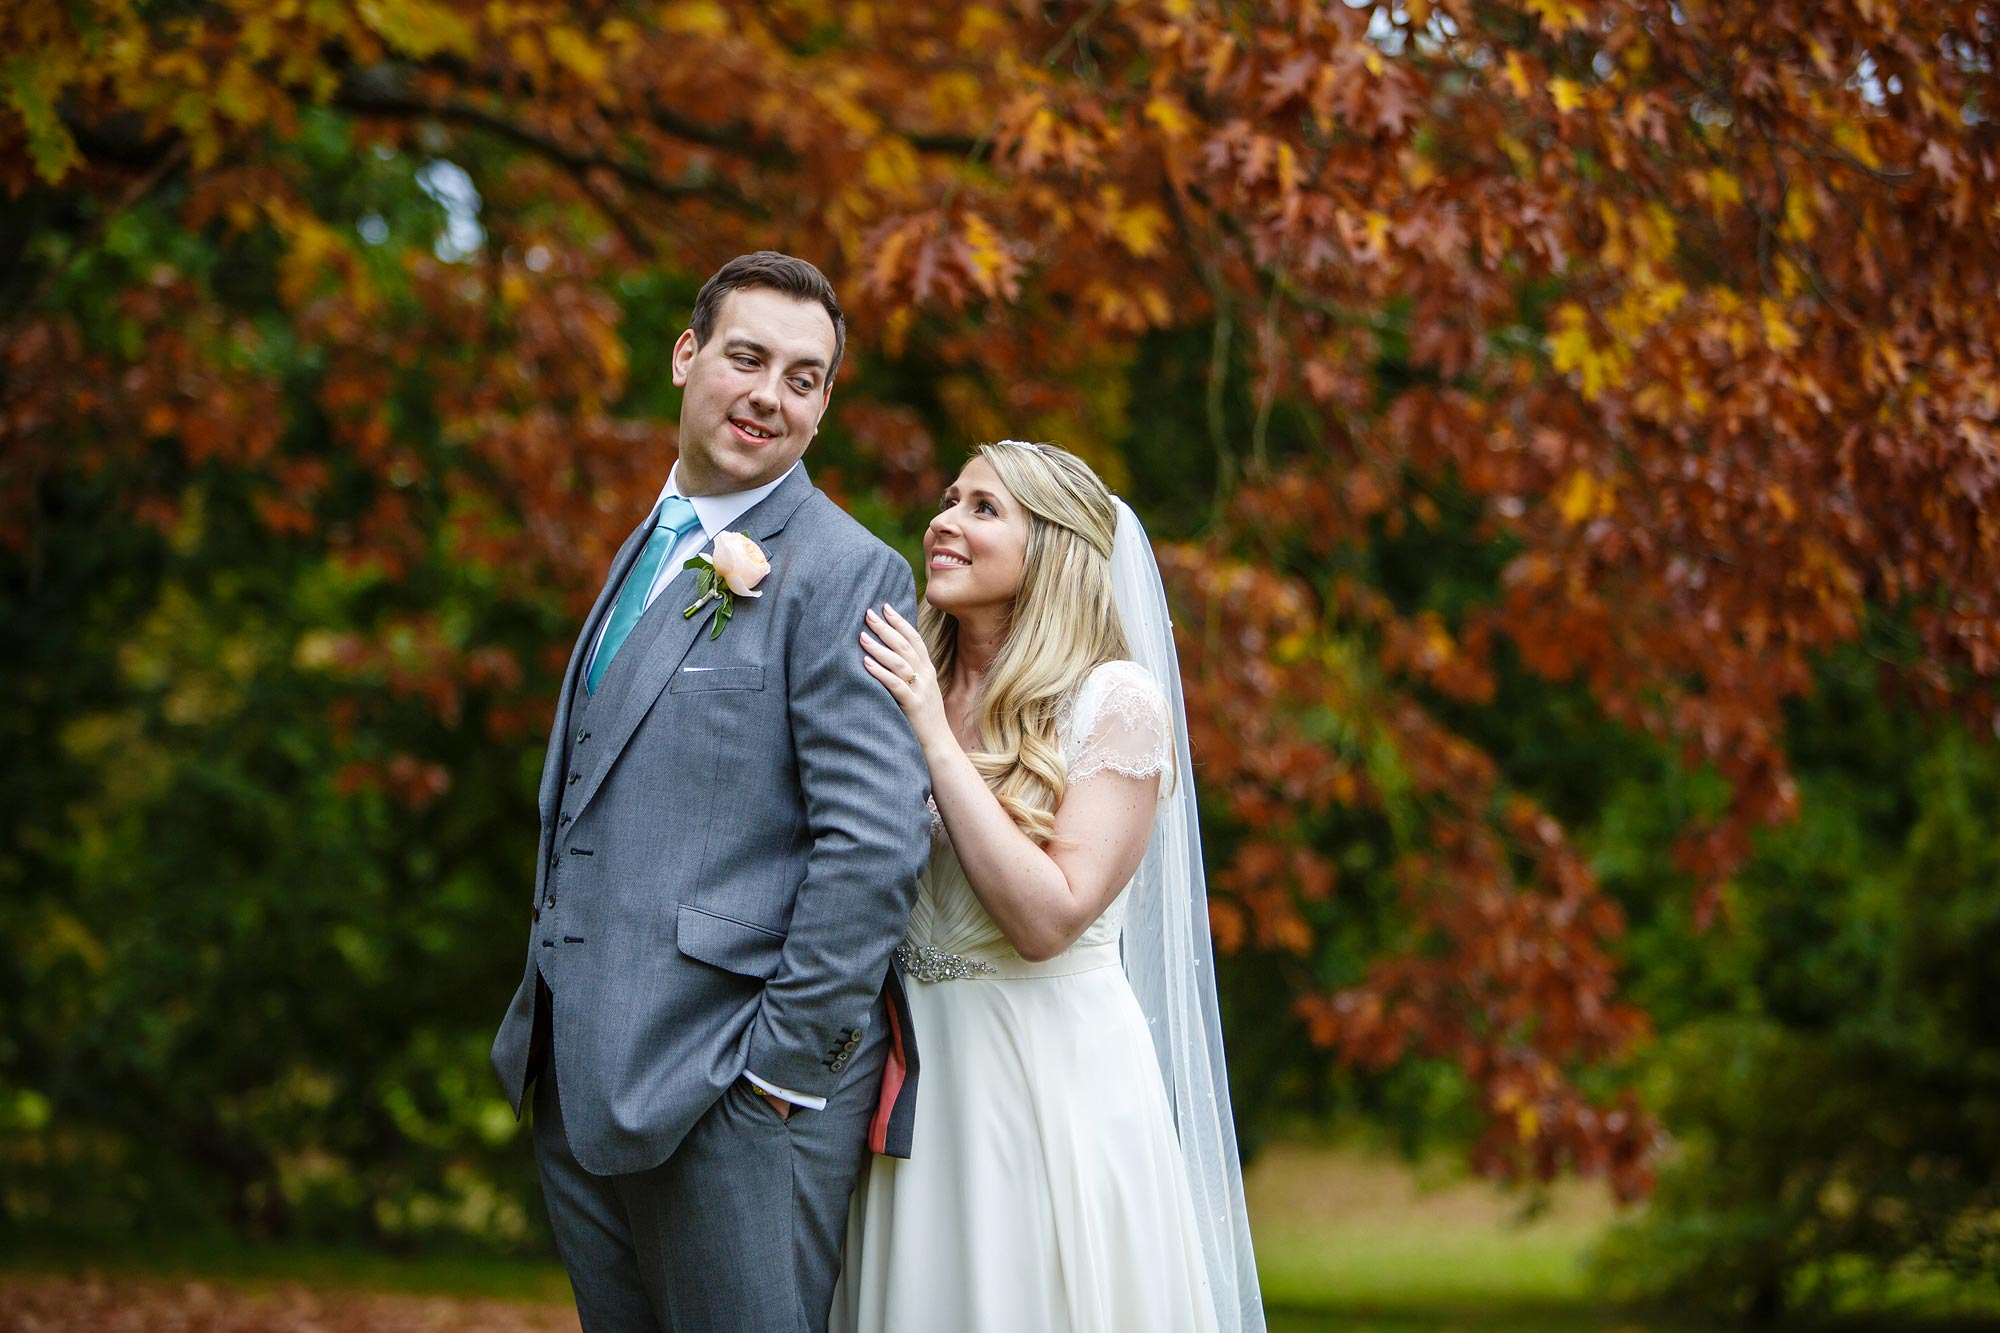 Botleys Mansion autumn wedding